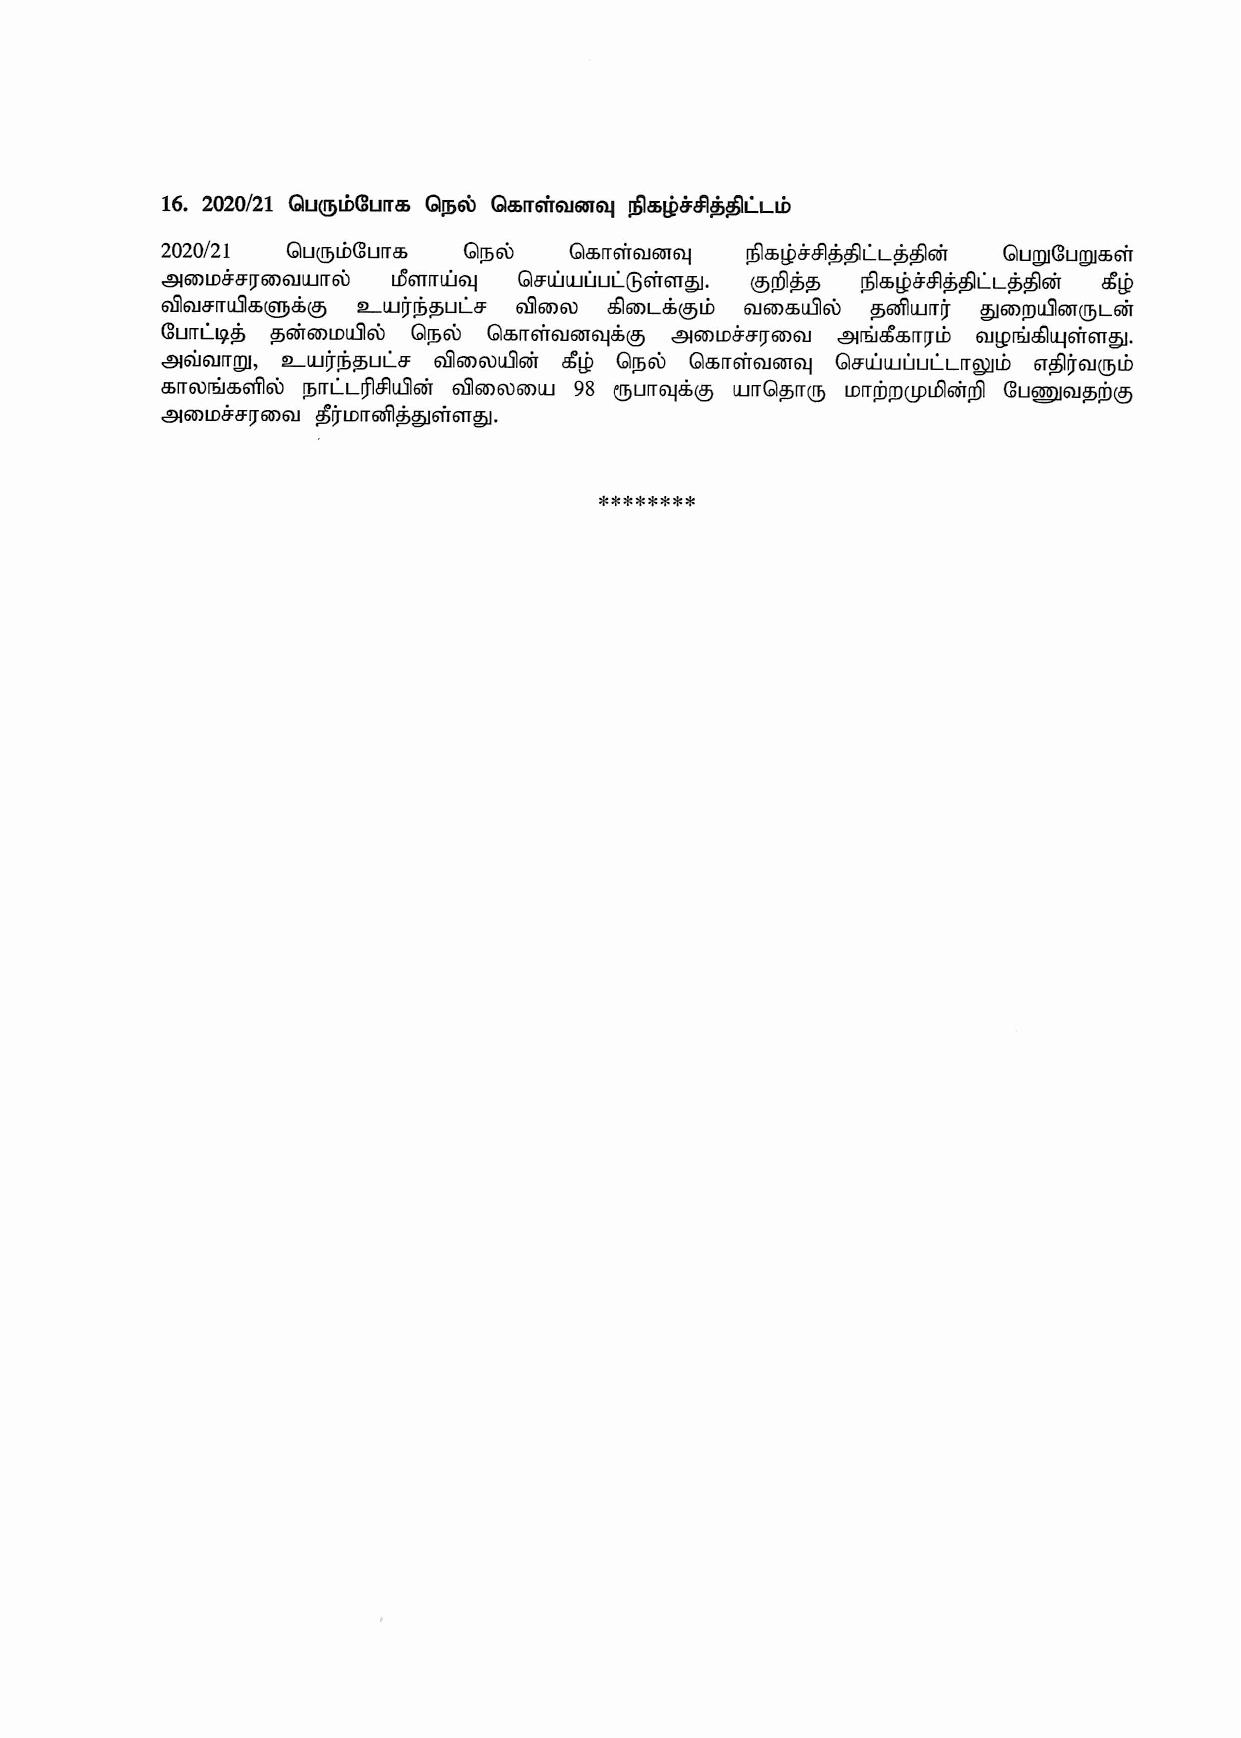 Cabinet Decision on 22.02.2021 Tamil page 005